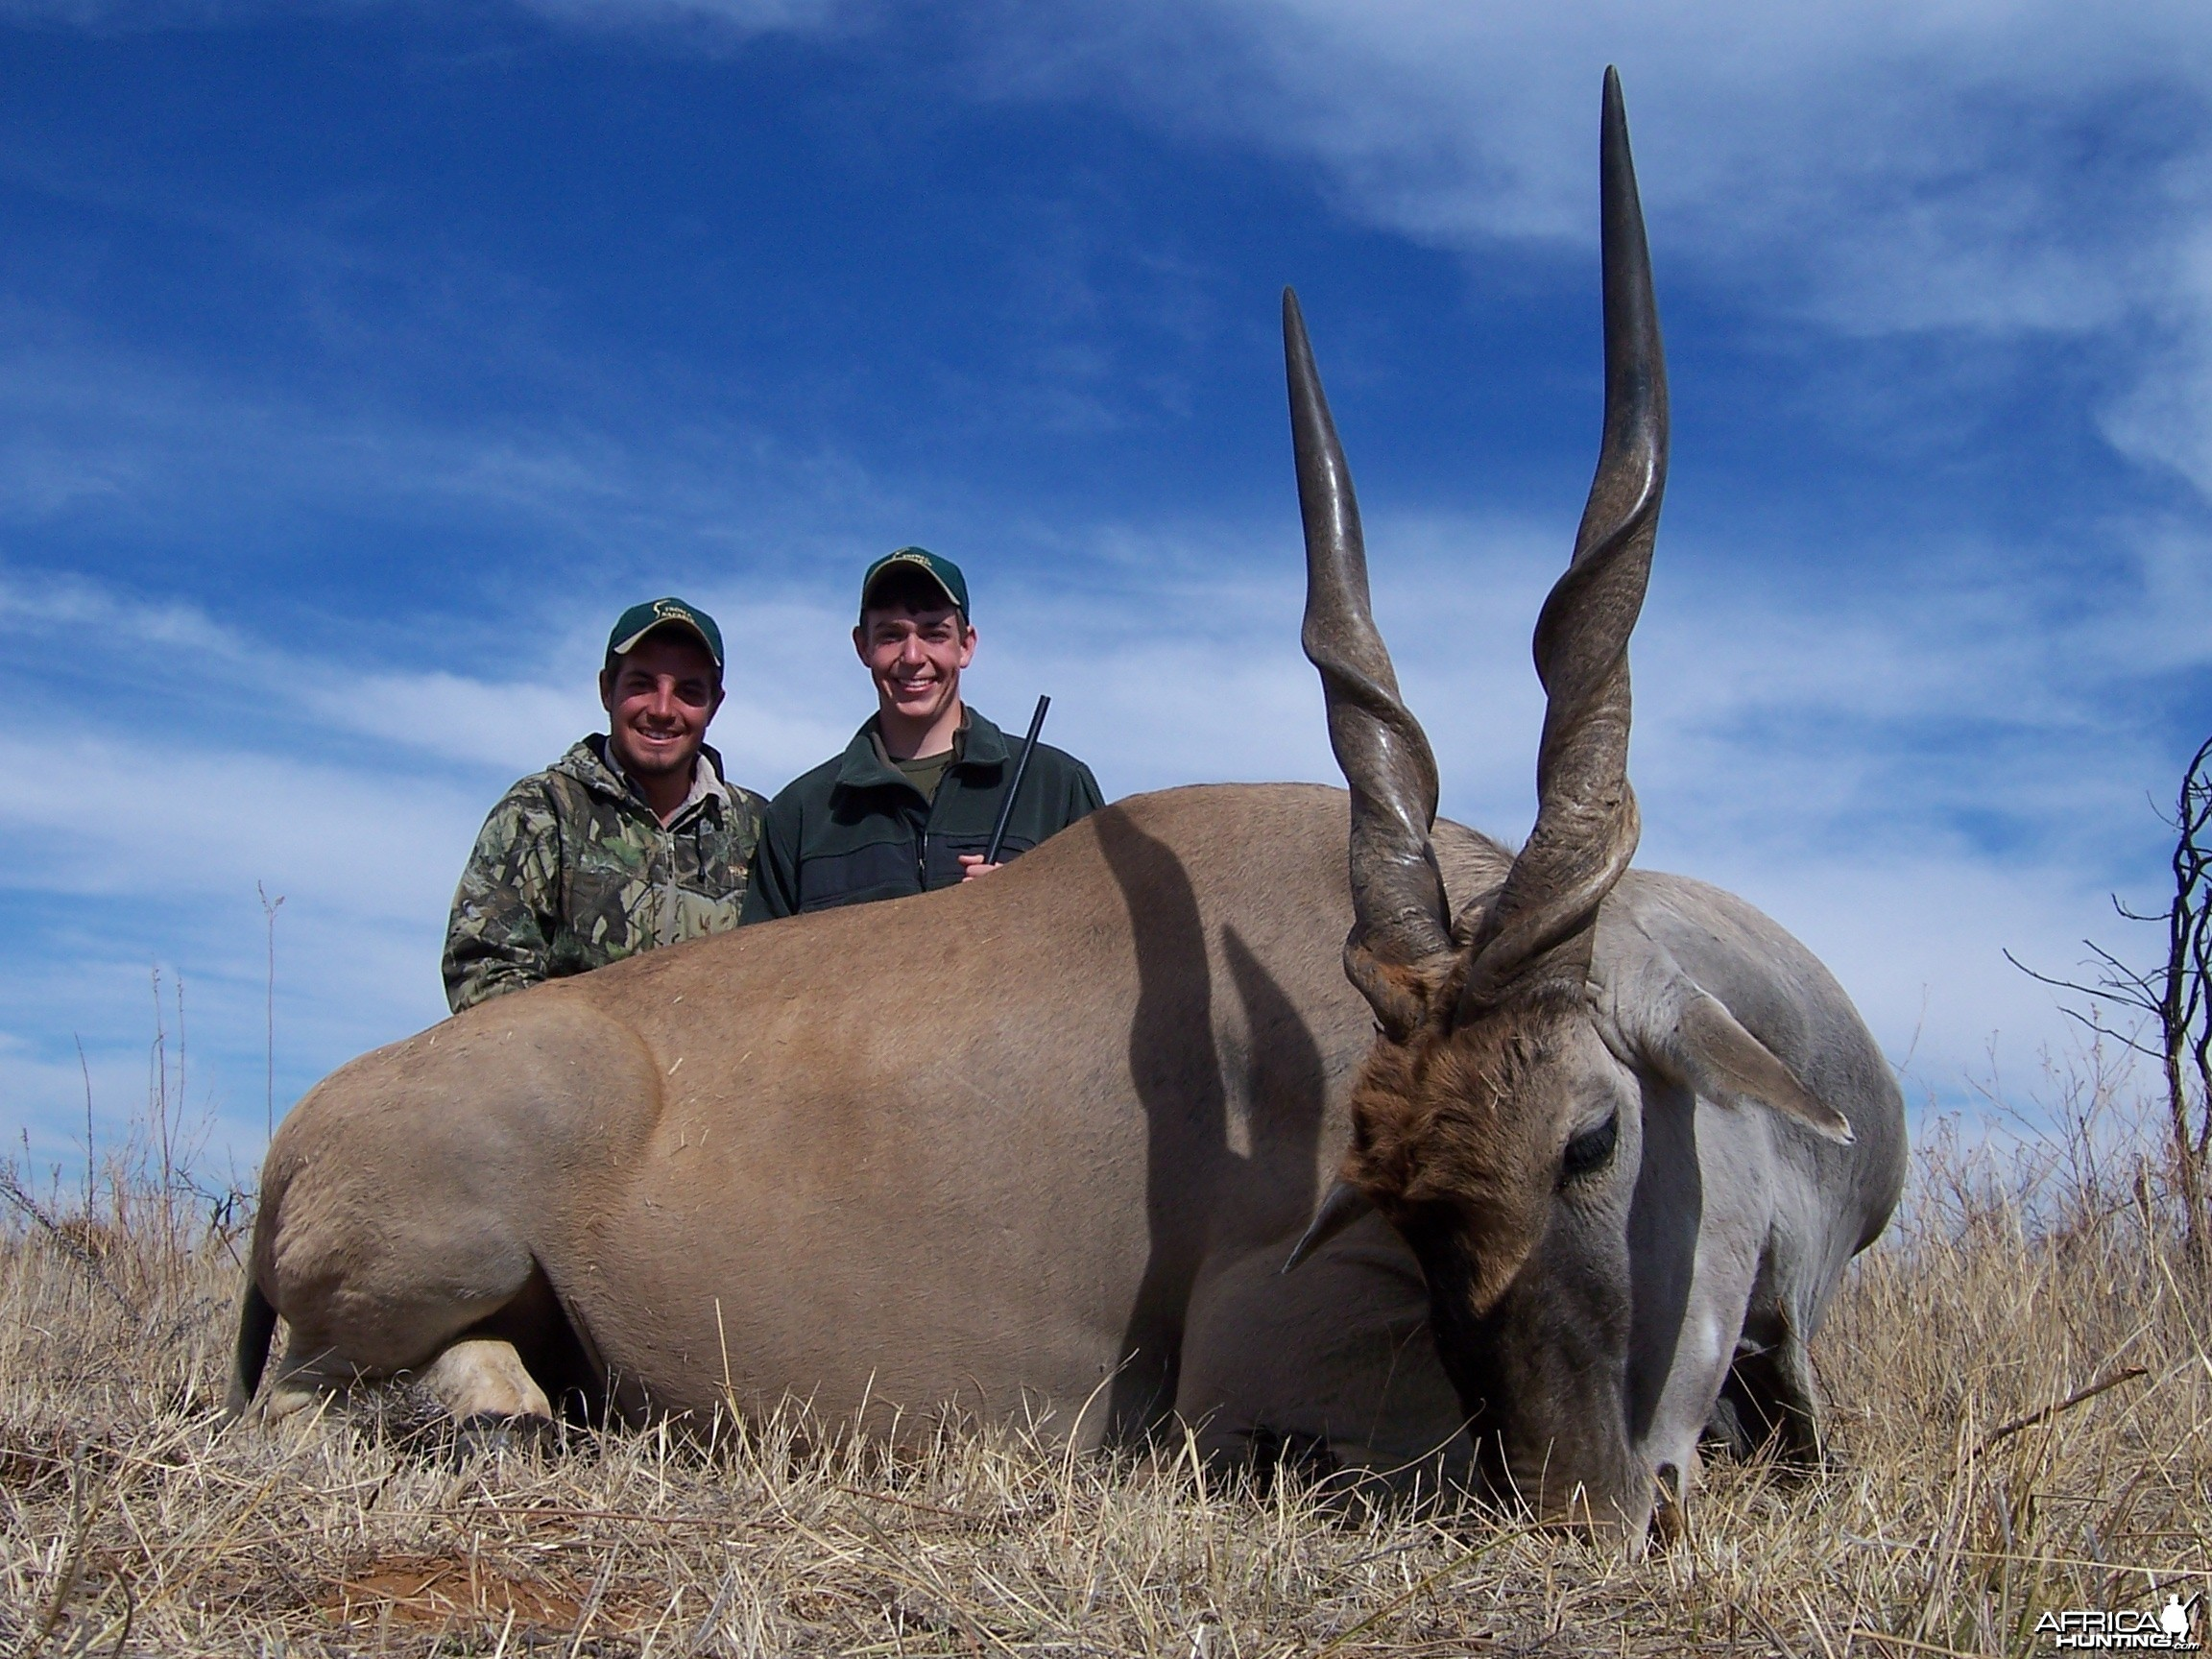 Cape Eland hunted with Hartzview Hunting Safaris